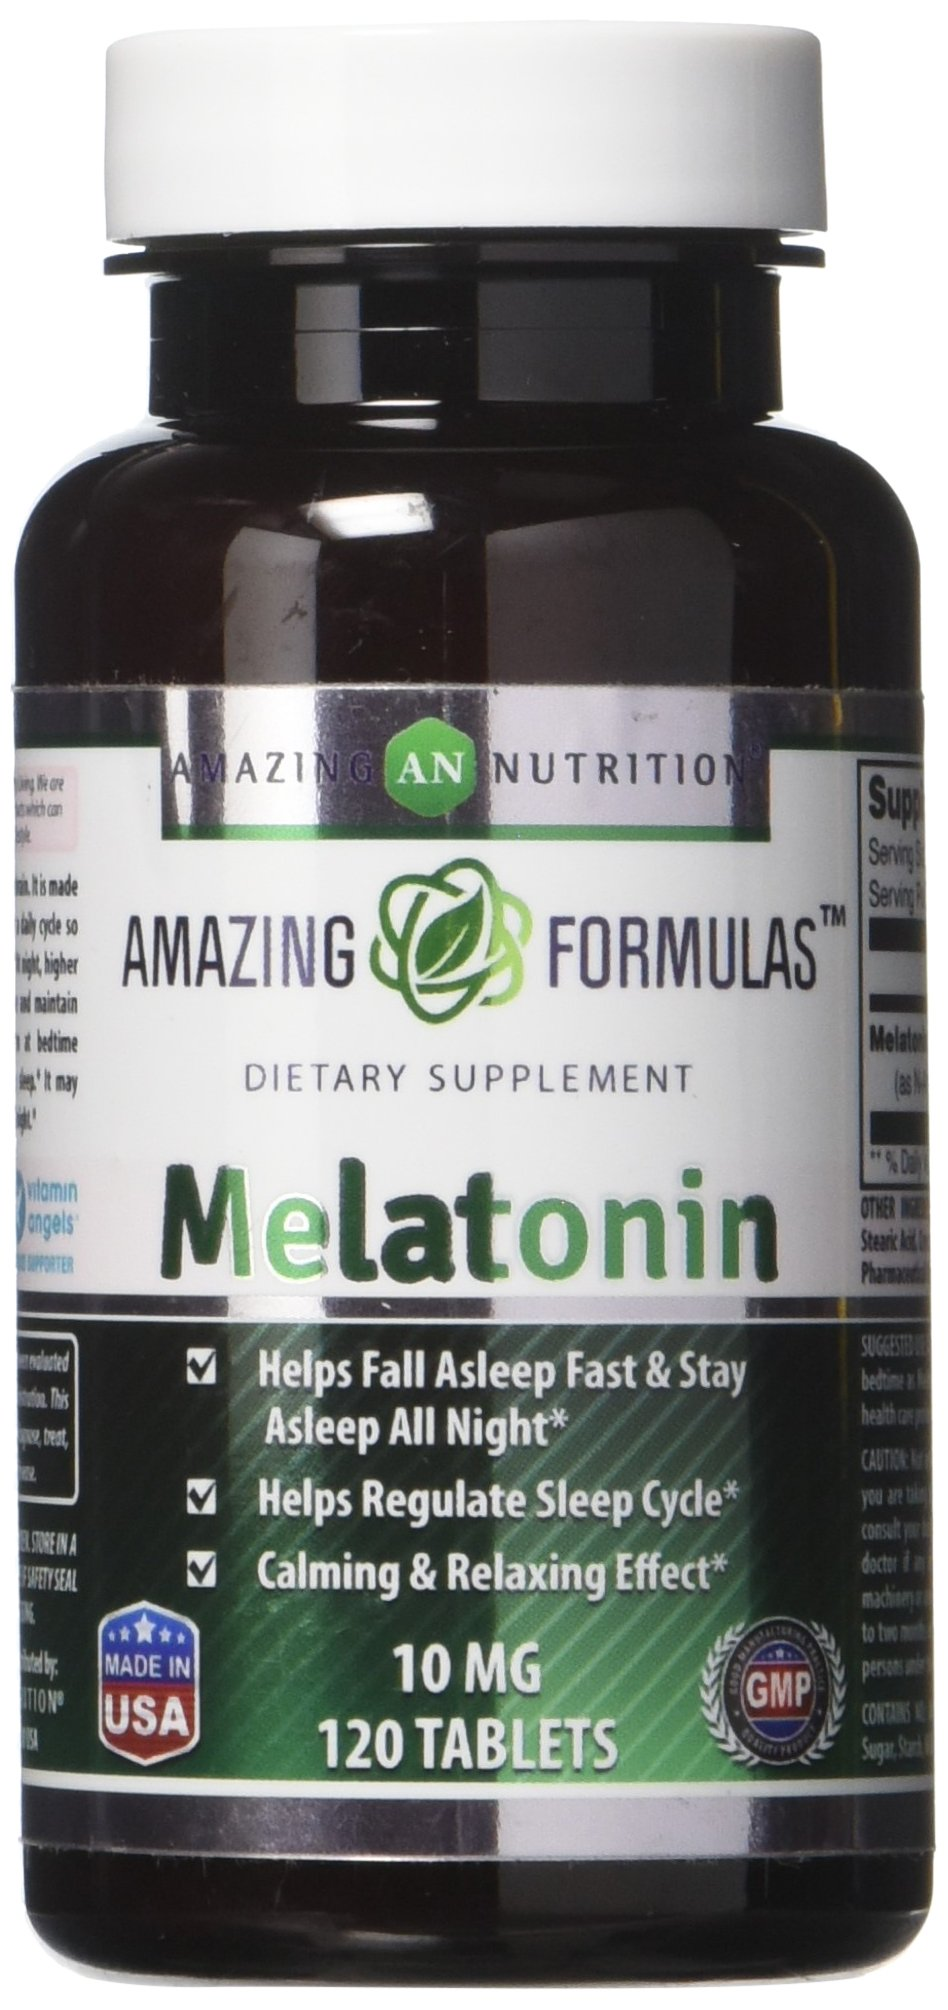 Amazing Nutrition Melatonin – 10 Mg Tablets - Best Choice of Natural Sleep Aid Supplement –